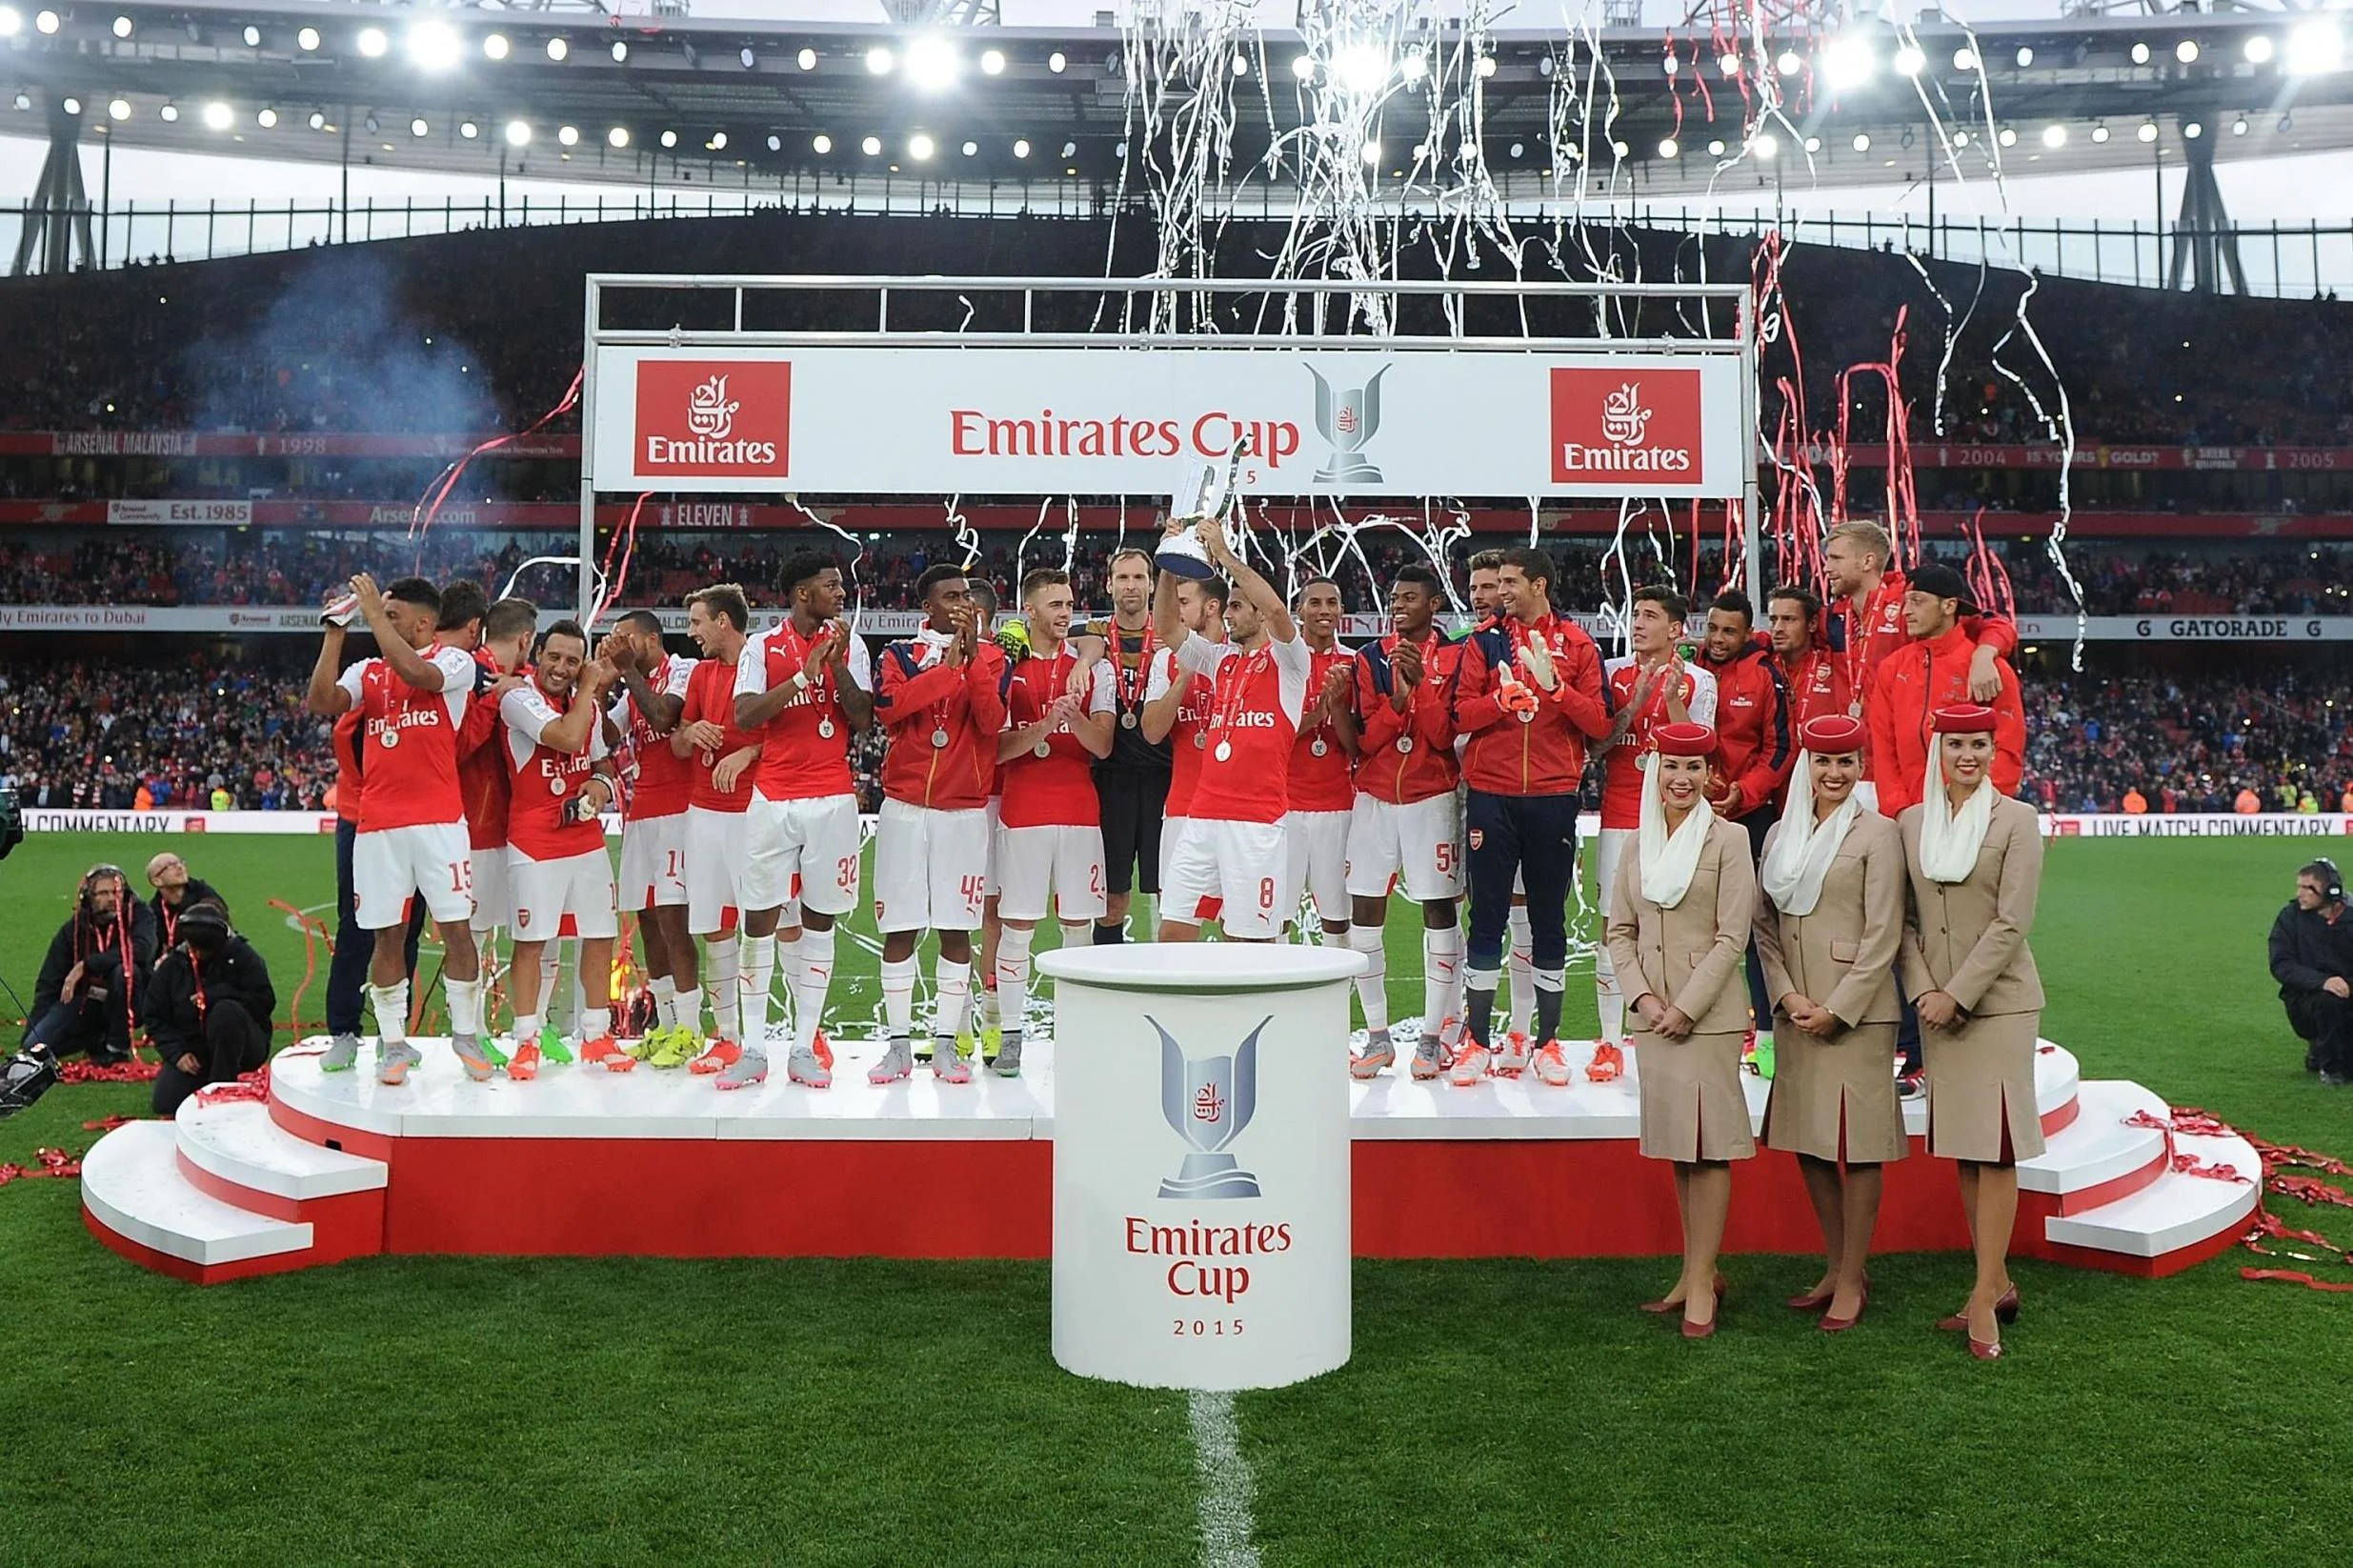 Family Pizza Leipzig Arsenal News Gunners Line Up Benfica For Emirates Cup As